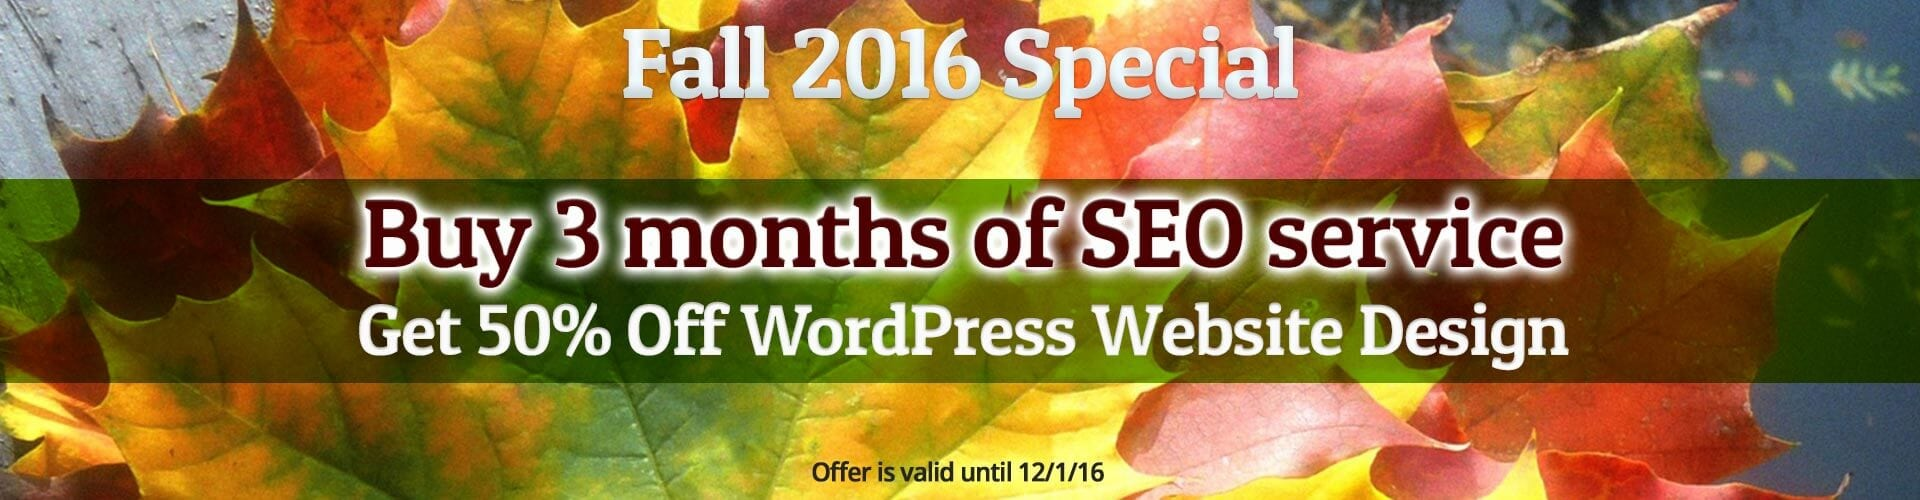 fall-2016-special